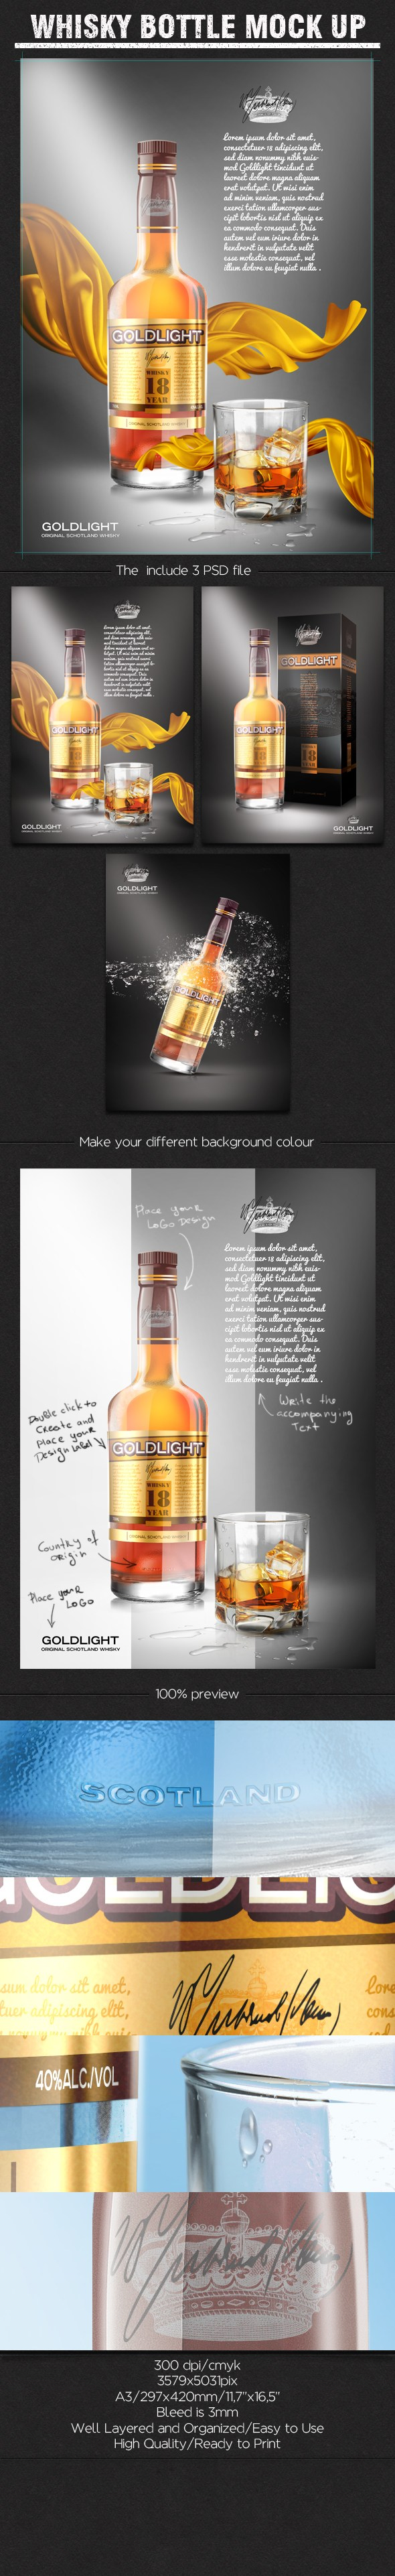 Whisky Bottle Mockup Free PSD